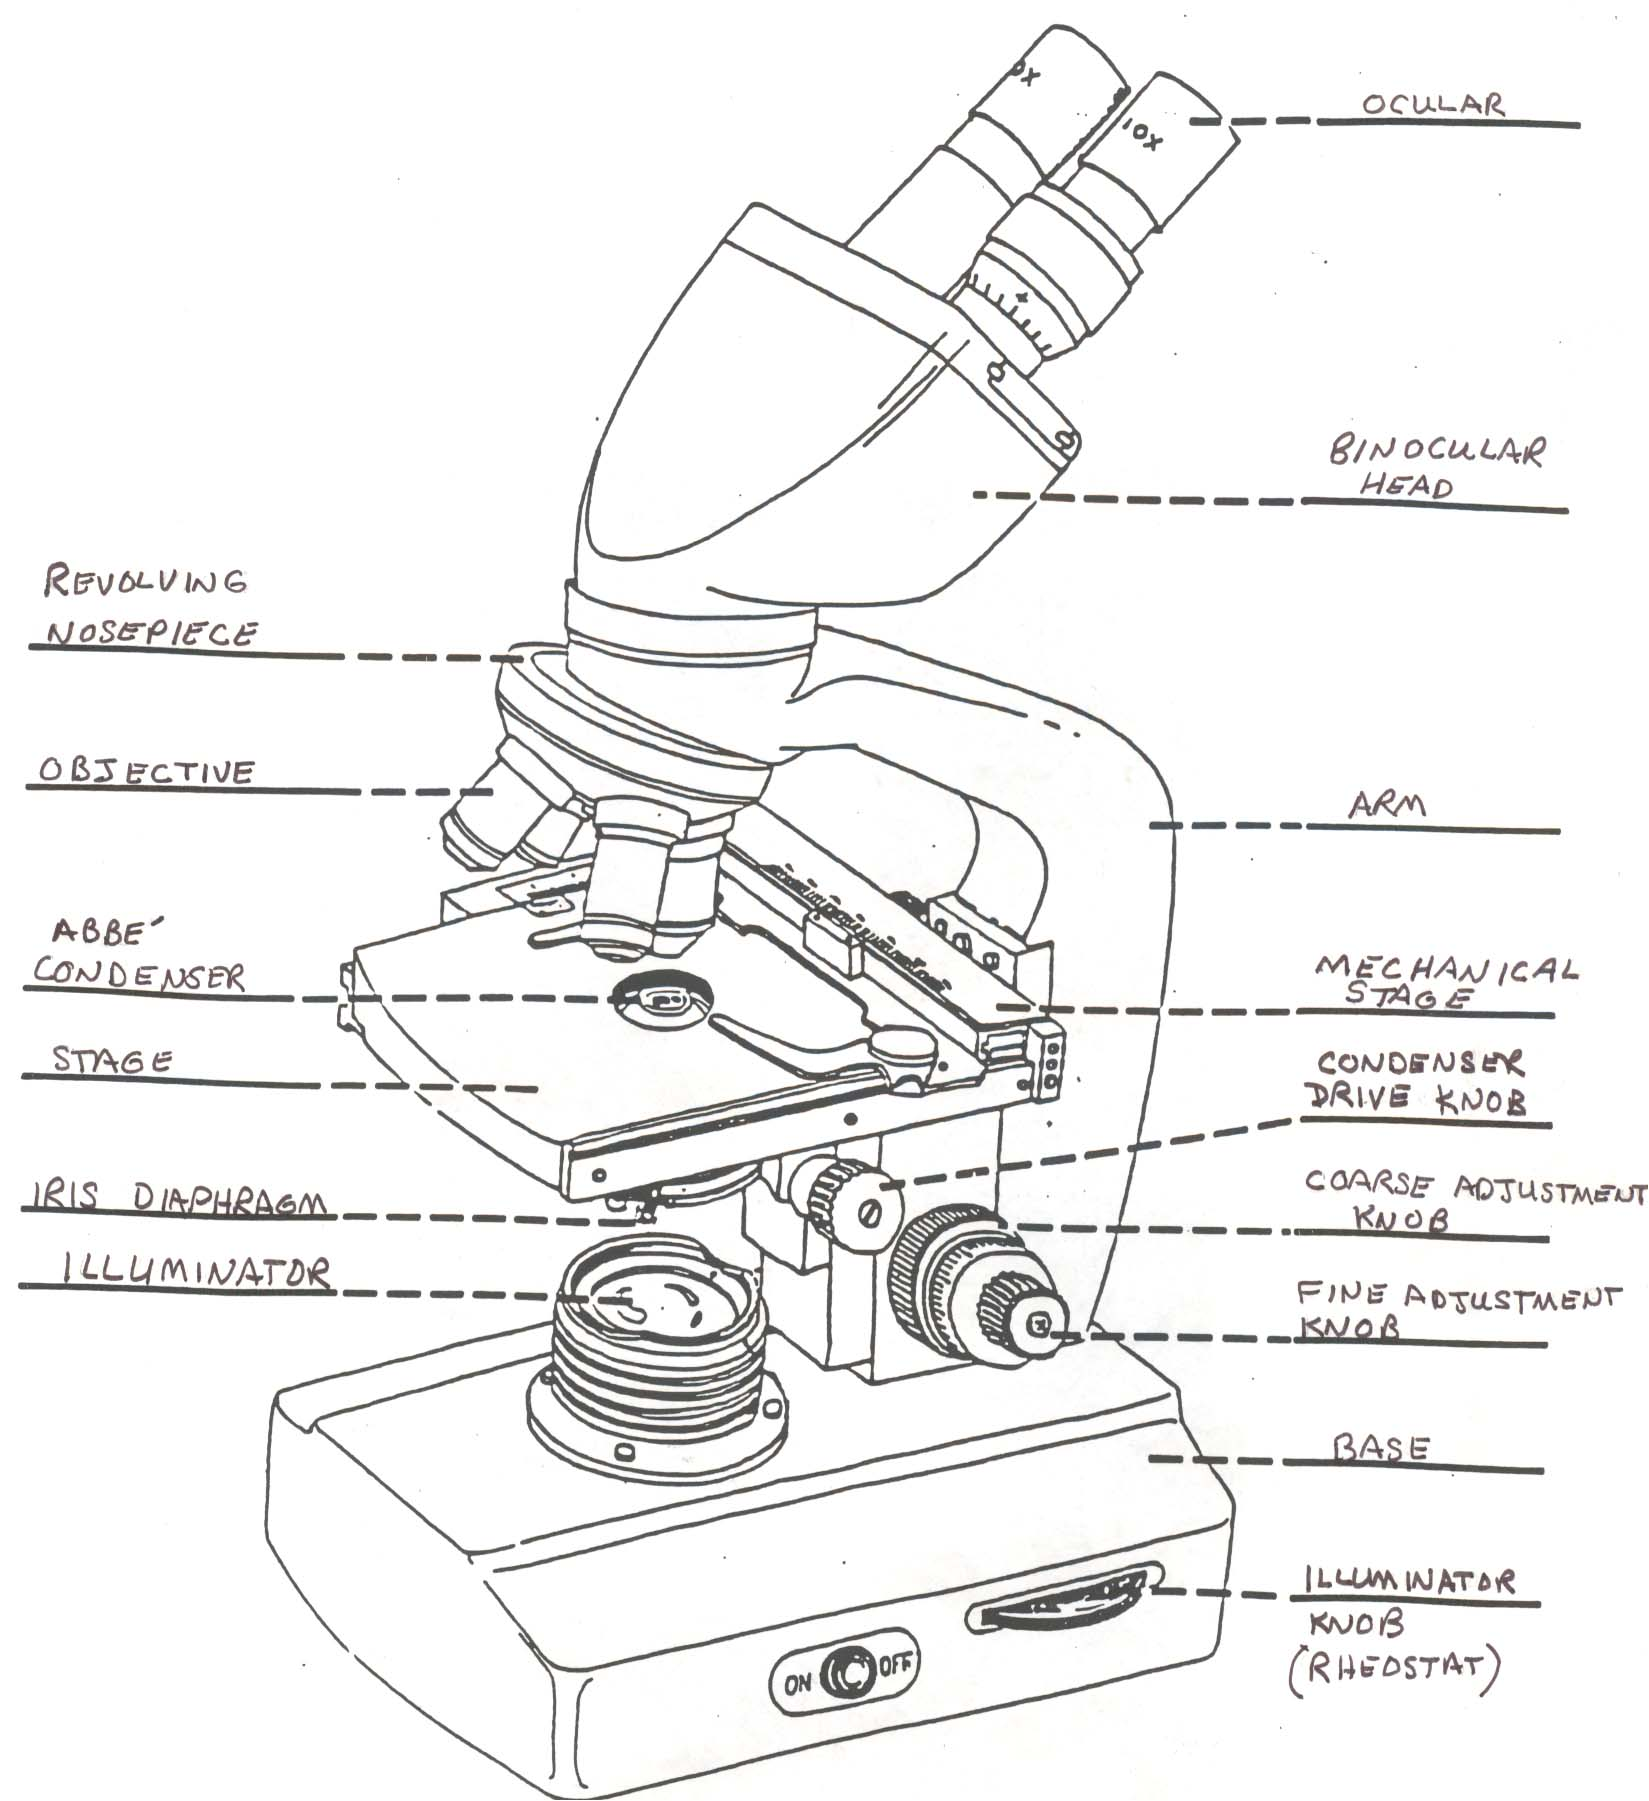 SFCC Biology 160 Documents – Microscope Lab Worksheet